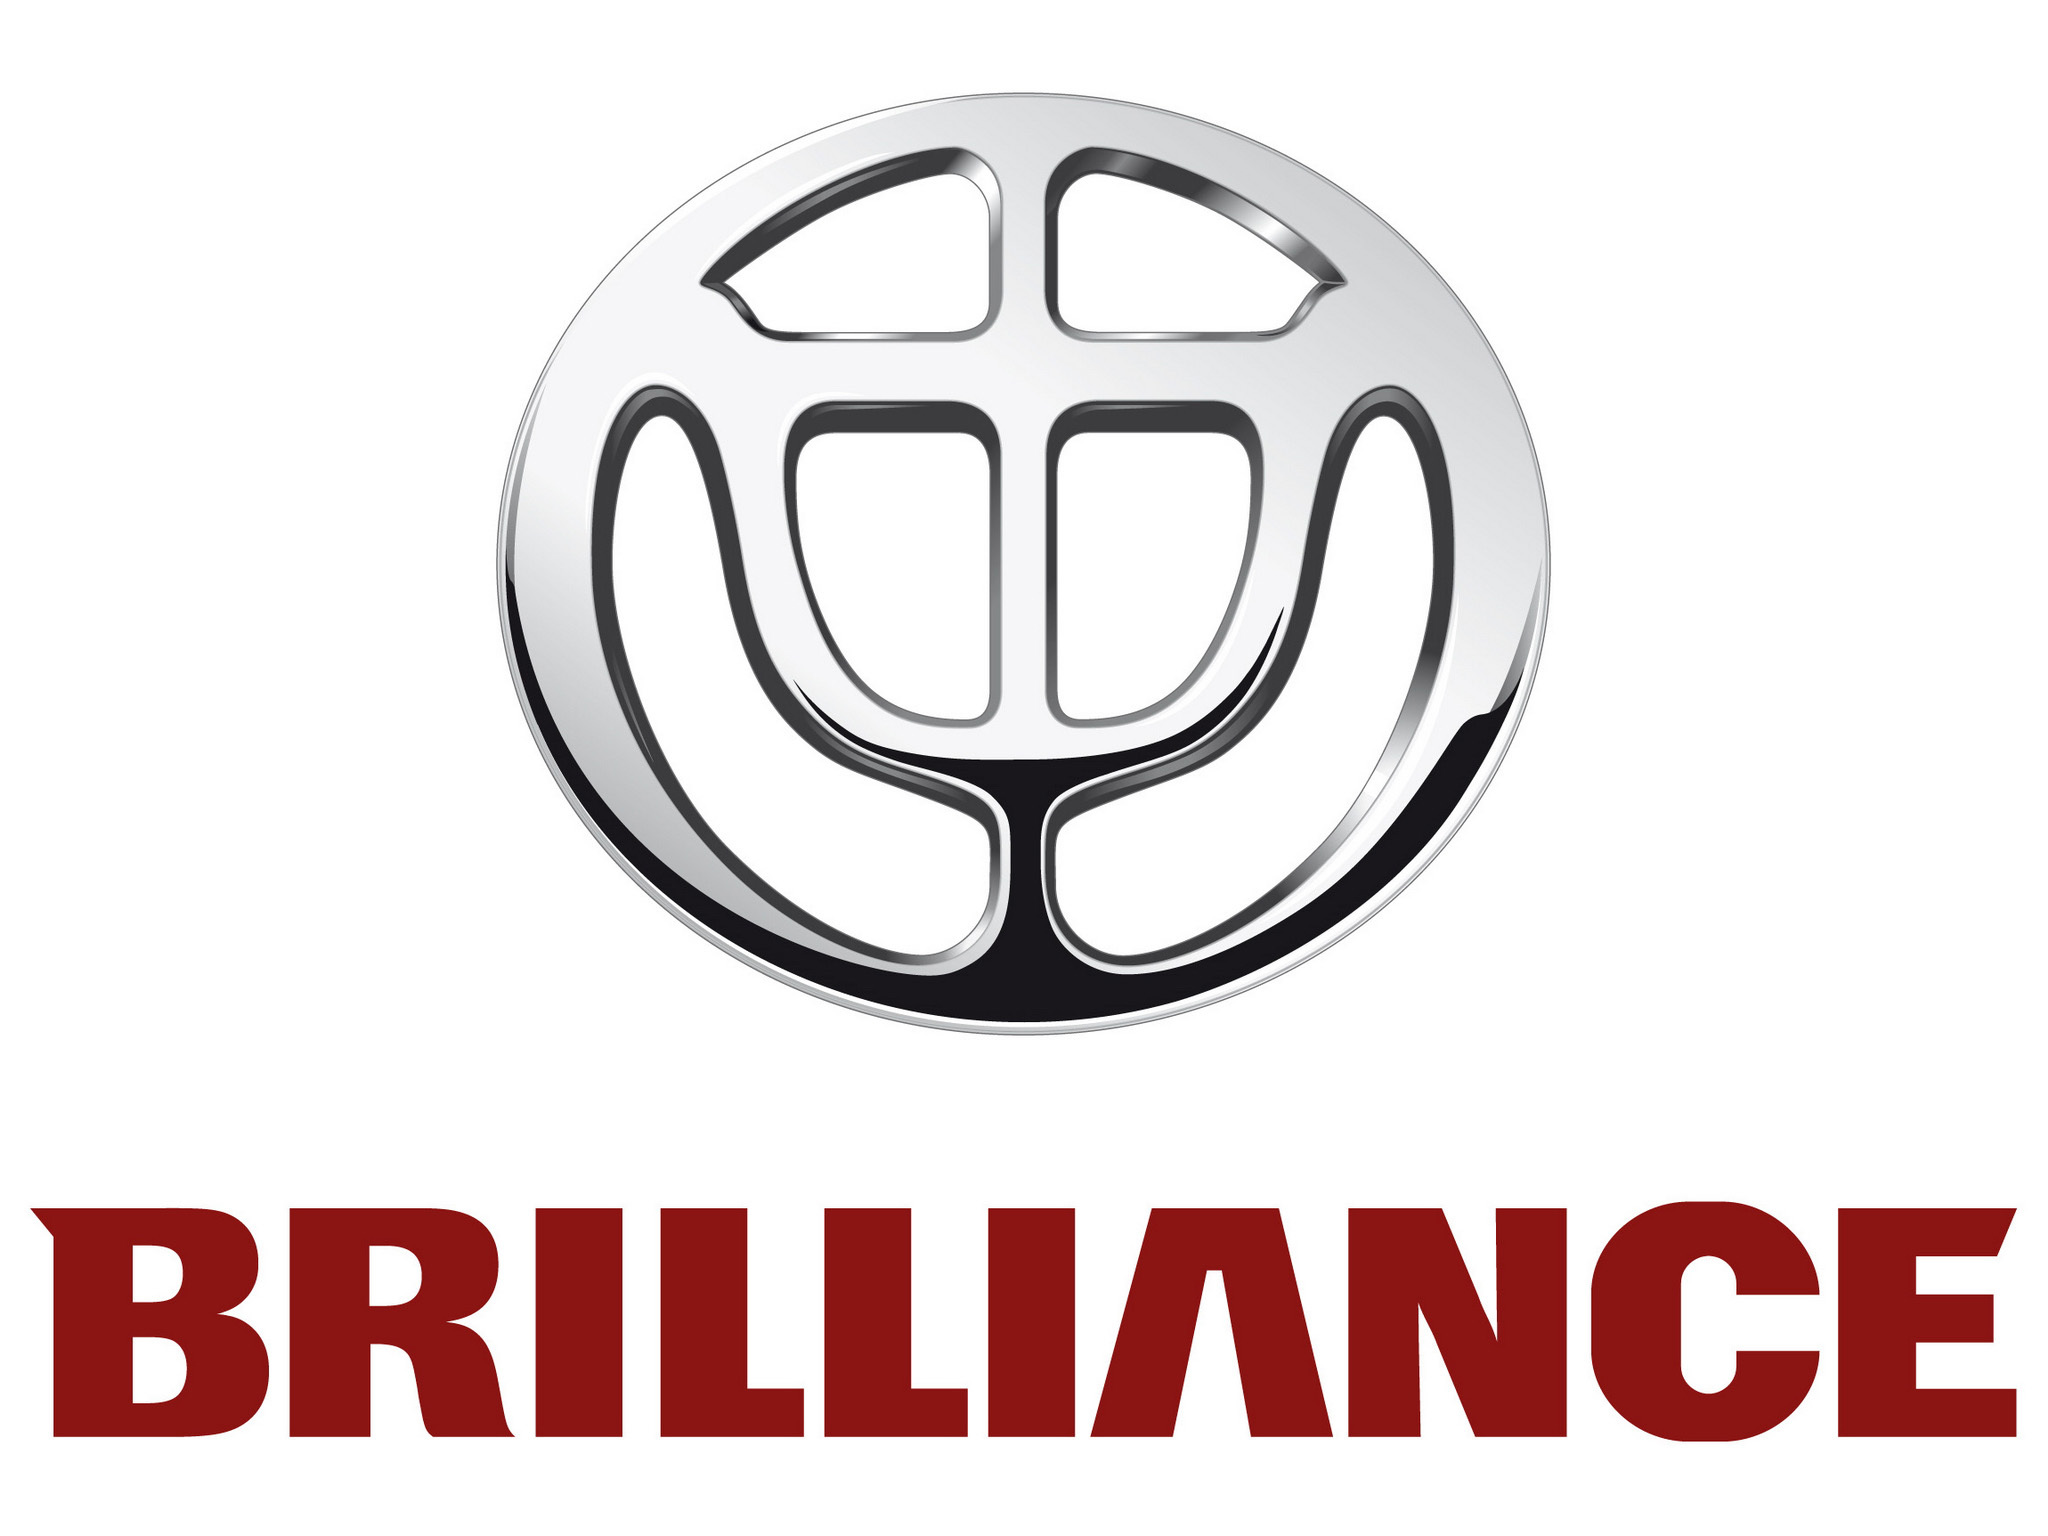 Фильтра Brilliance V5 для Brilliance V5 2011 - цена